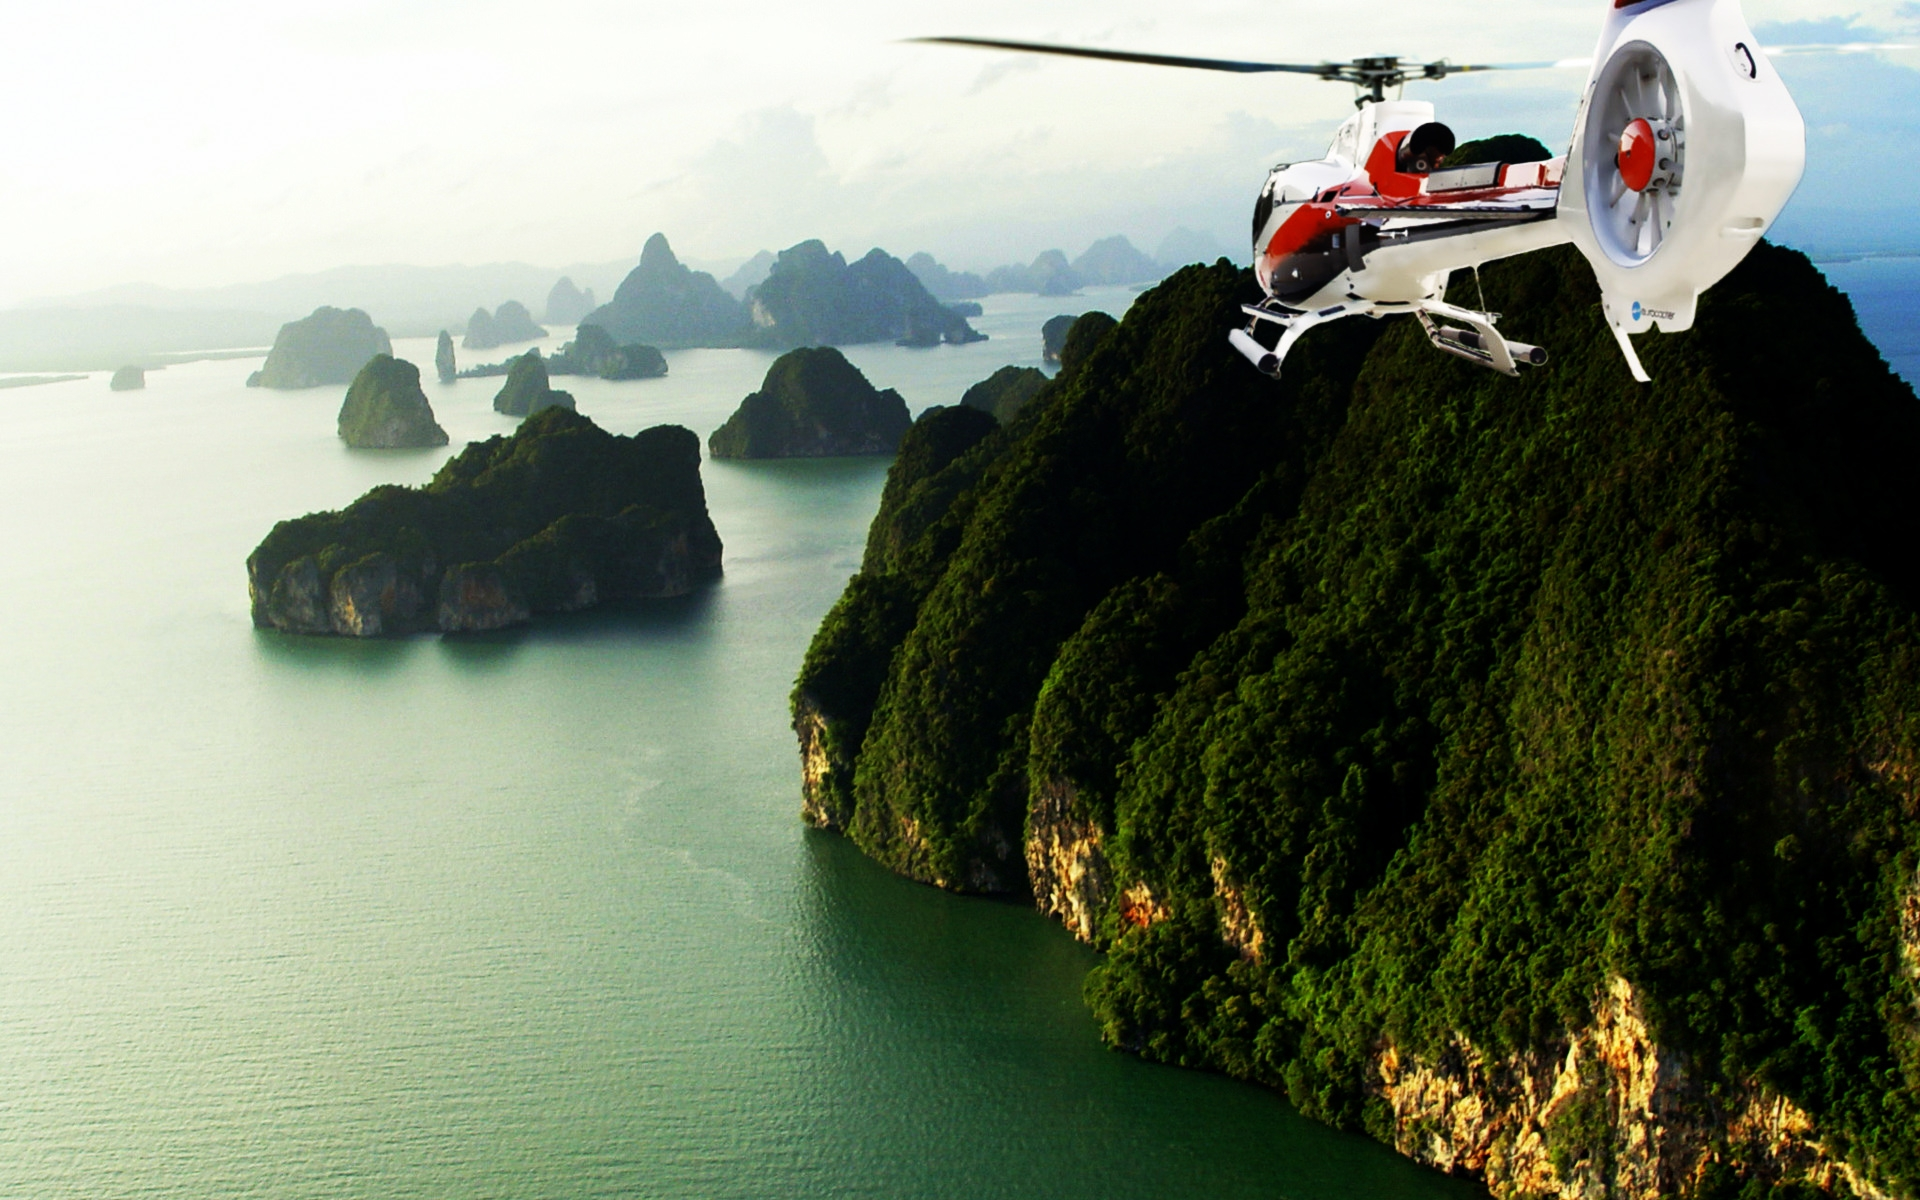 Image: Wallpaper-Helicopter-KCA35.jpg